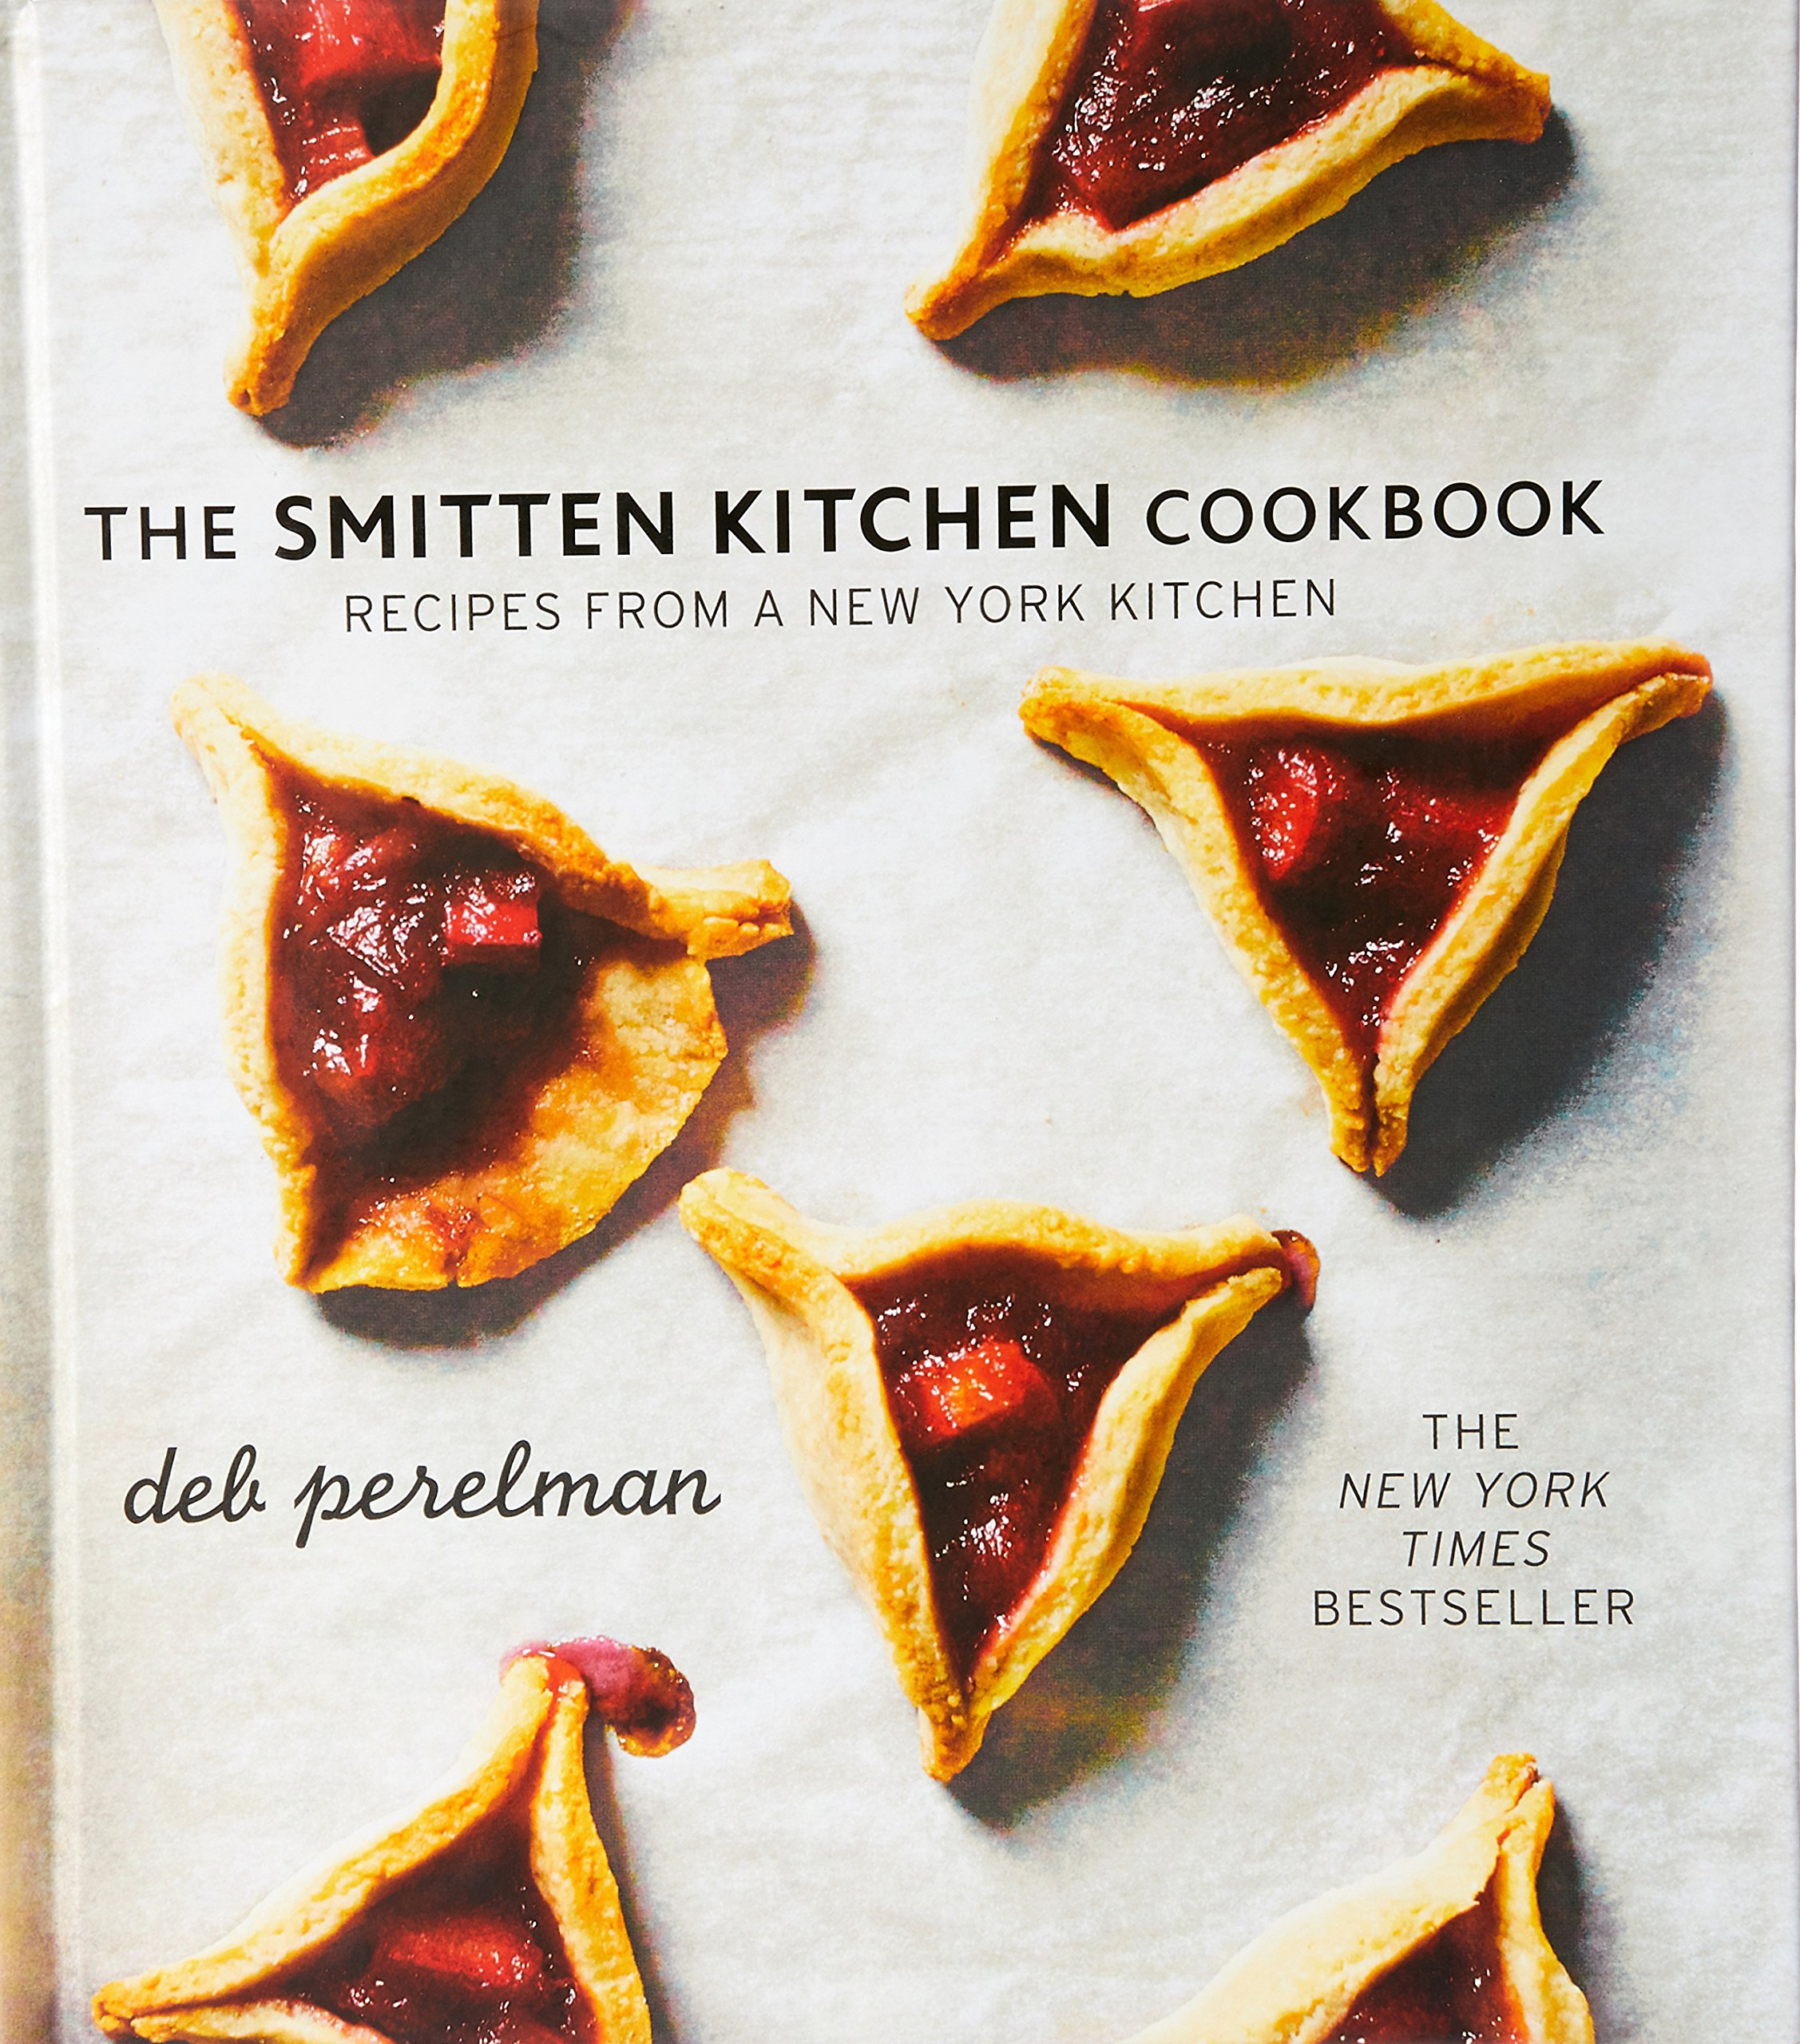 The Smitten Kitchen Cookbook: Amazon.es: Deb Perelman: Libros en idiomas extranjeros